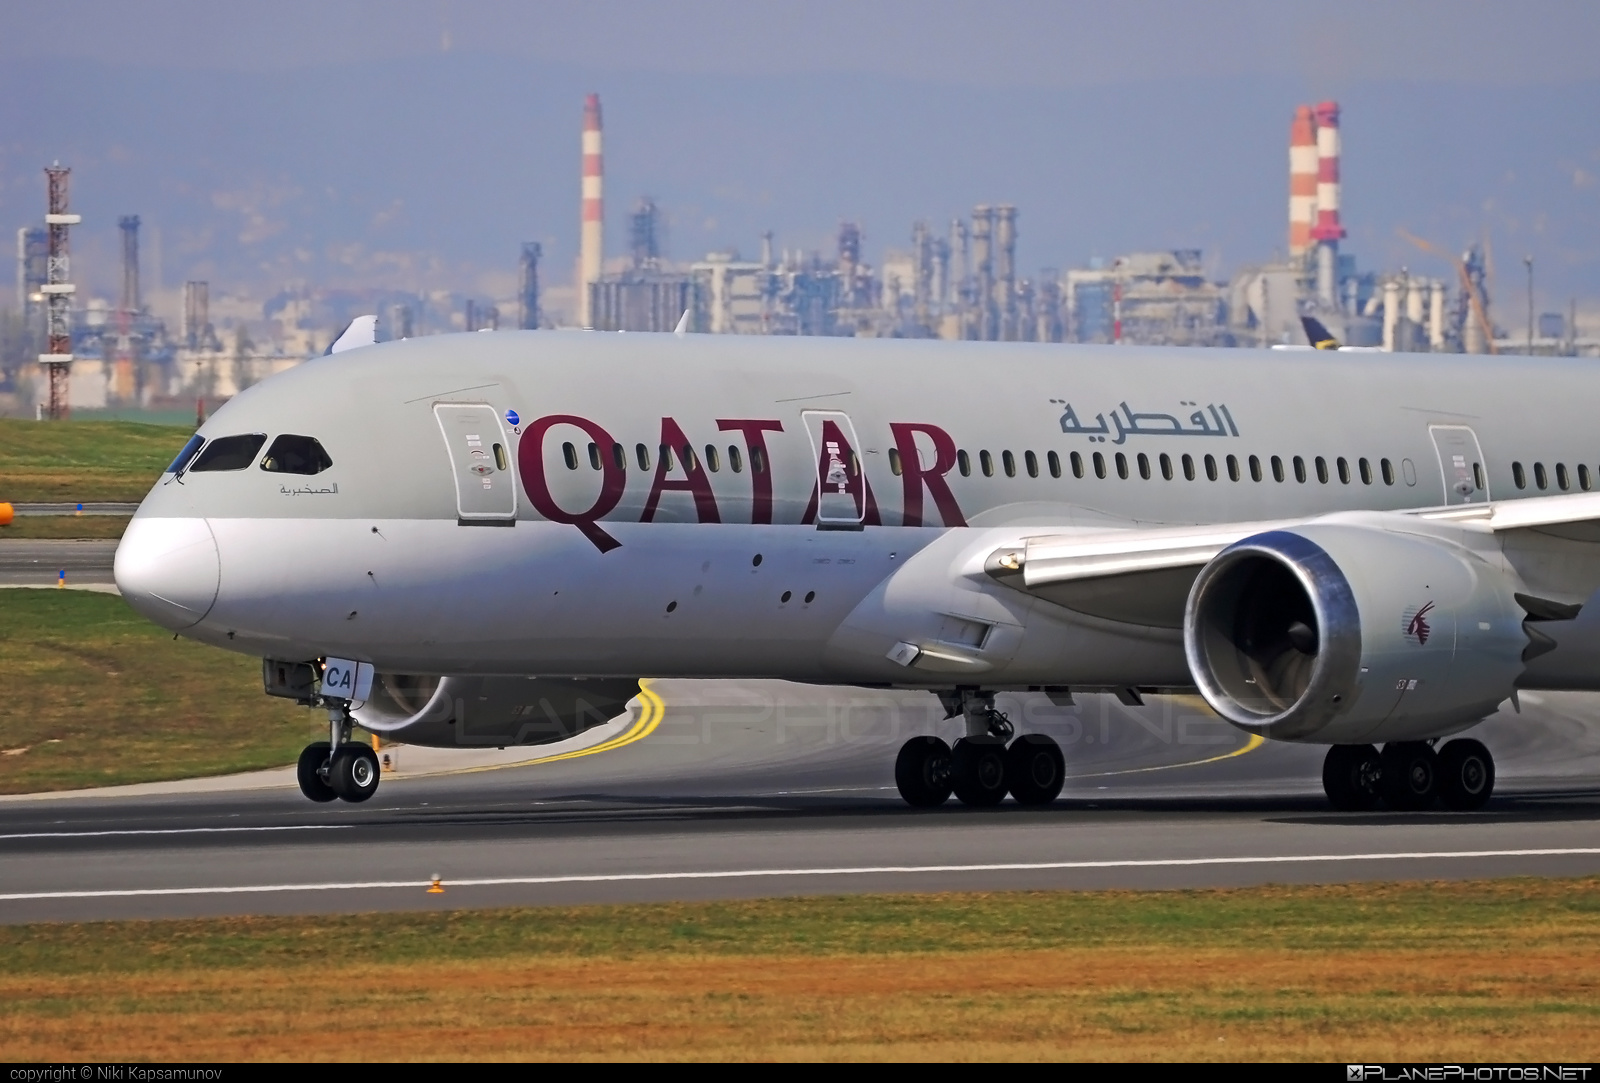 Boeing 787-8 Dreamliner - A7-BCA operated by Qatar Airways #b787 #boeing #boeing787 #dreamliner #qatarairways